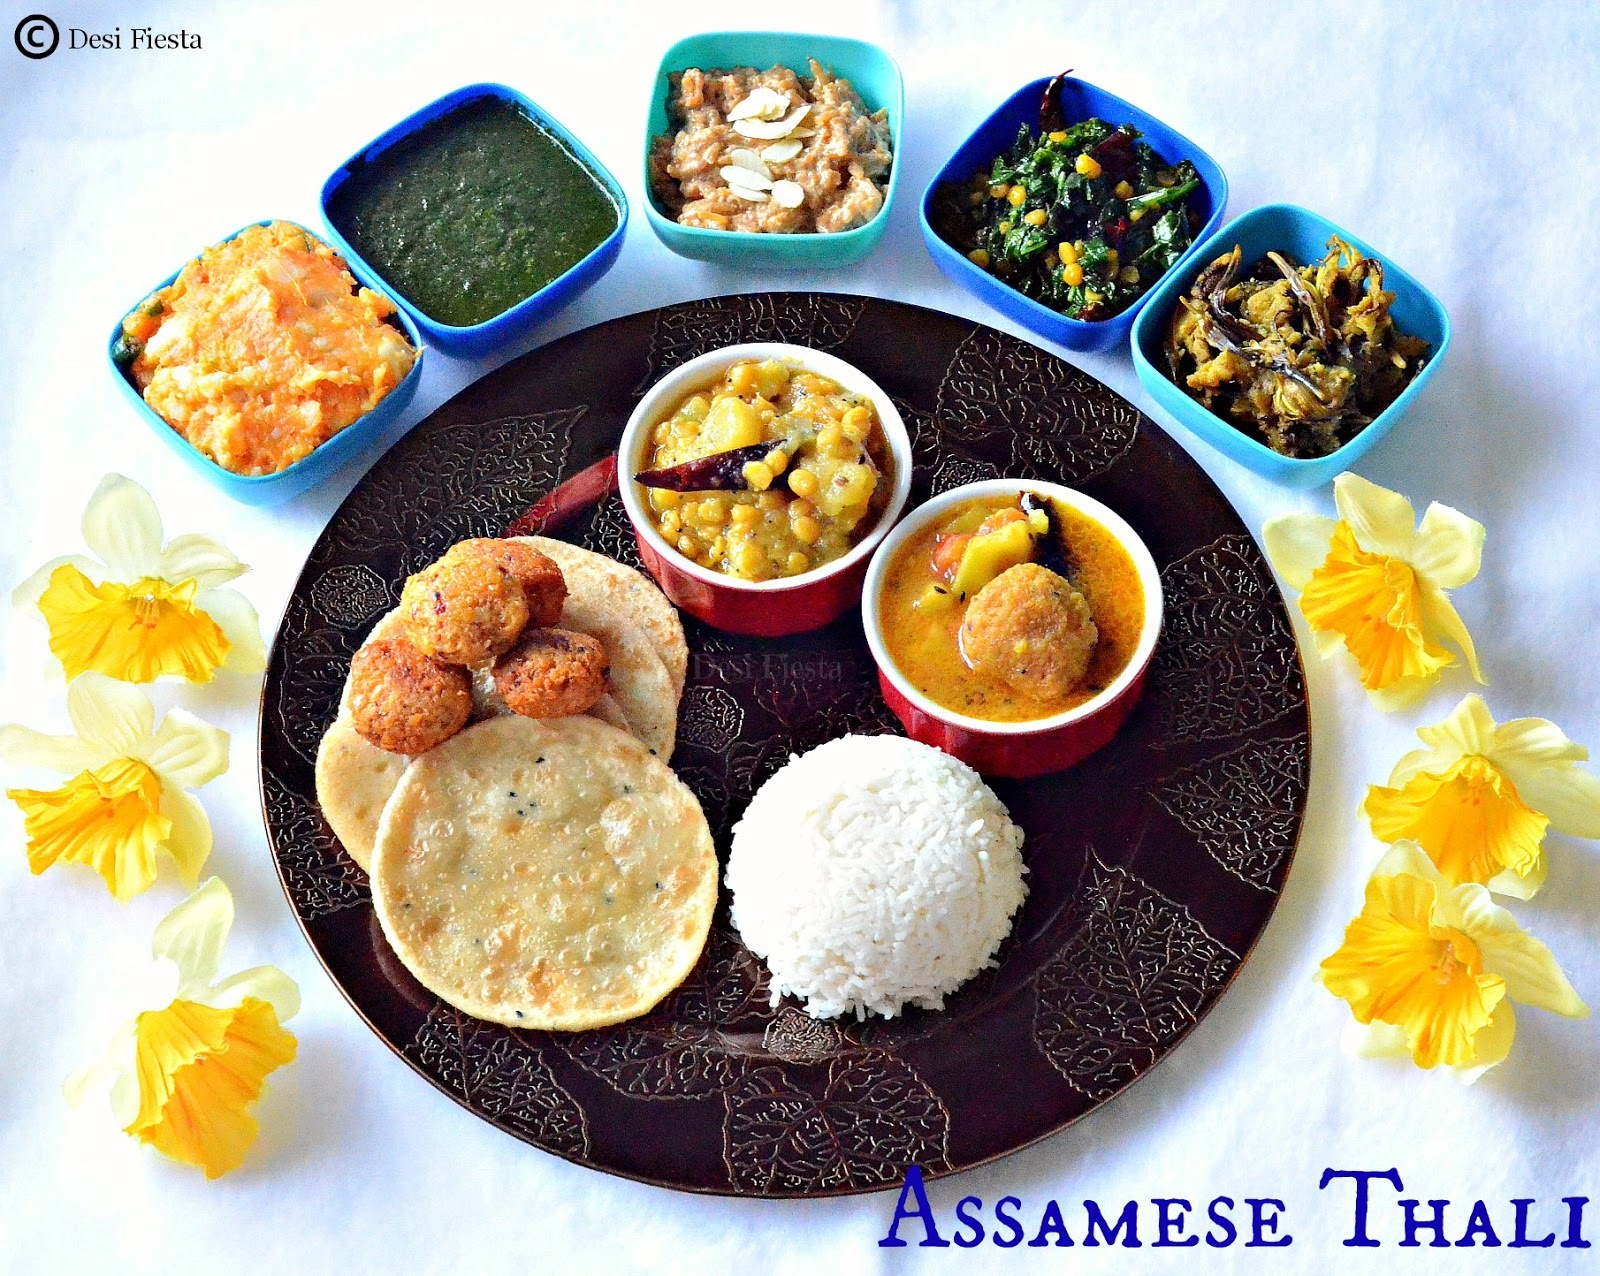 Assamese Thali / Aalohir Exaj (Assamese Platter for Guests)